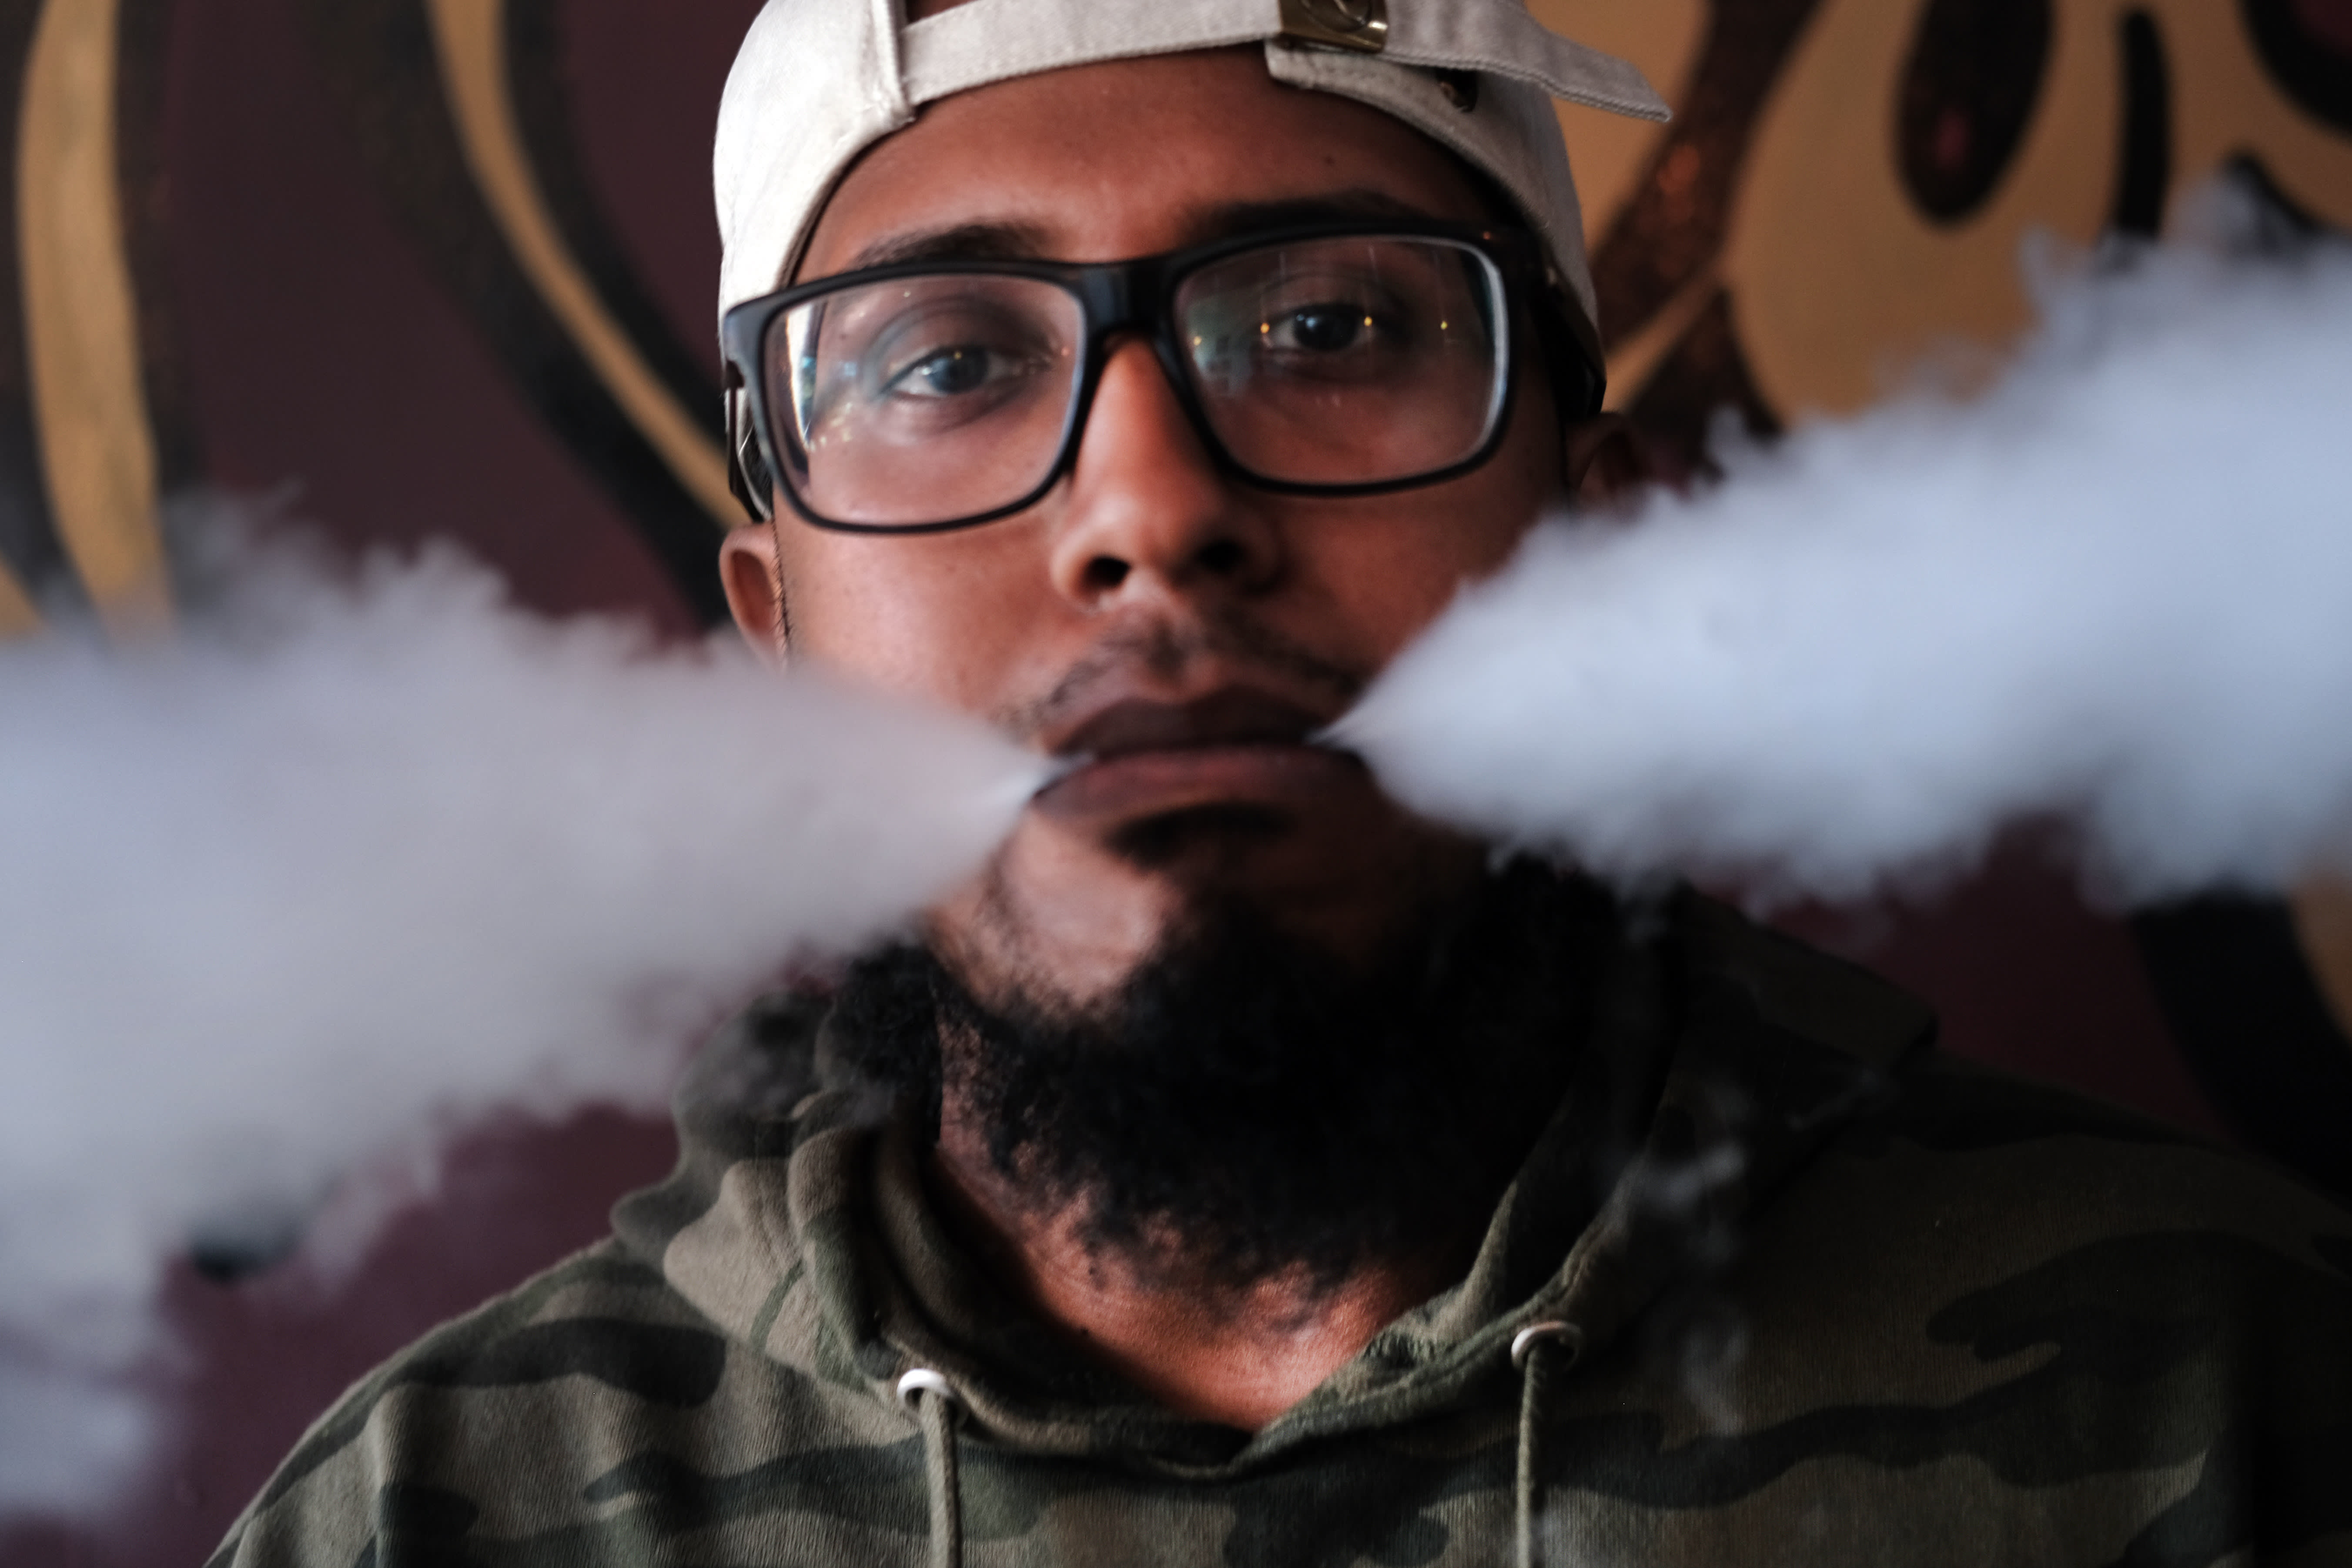 'Toxic chemical fumes,' not oils, may be causing vaping illness, Mayo Clinic researchers find